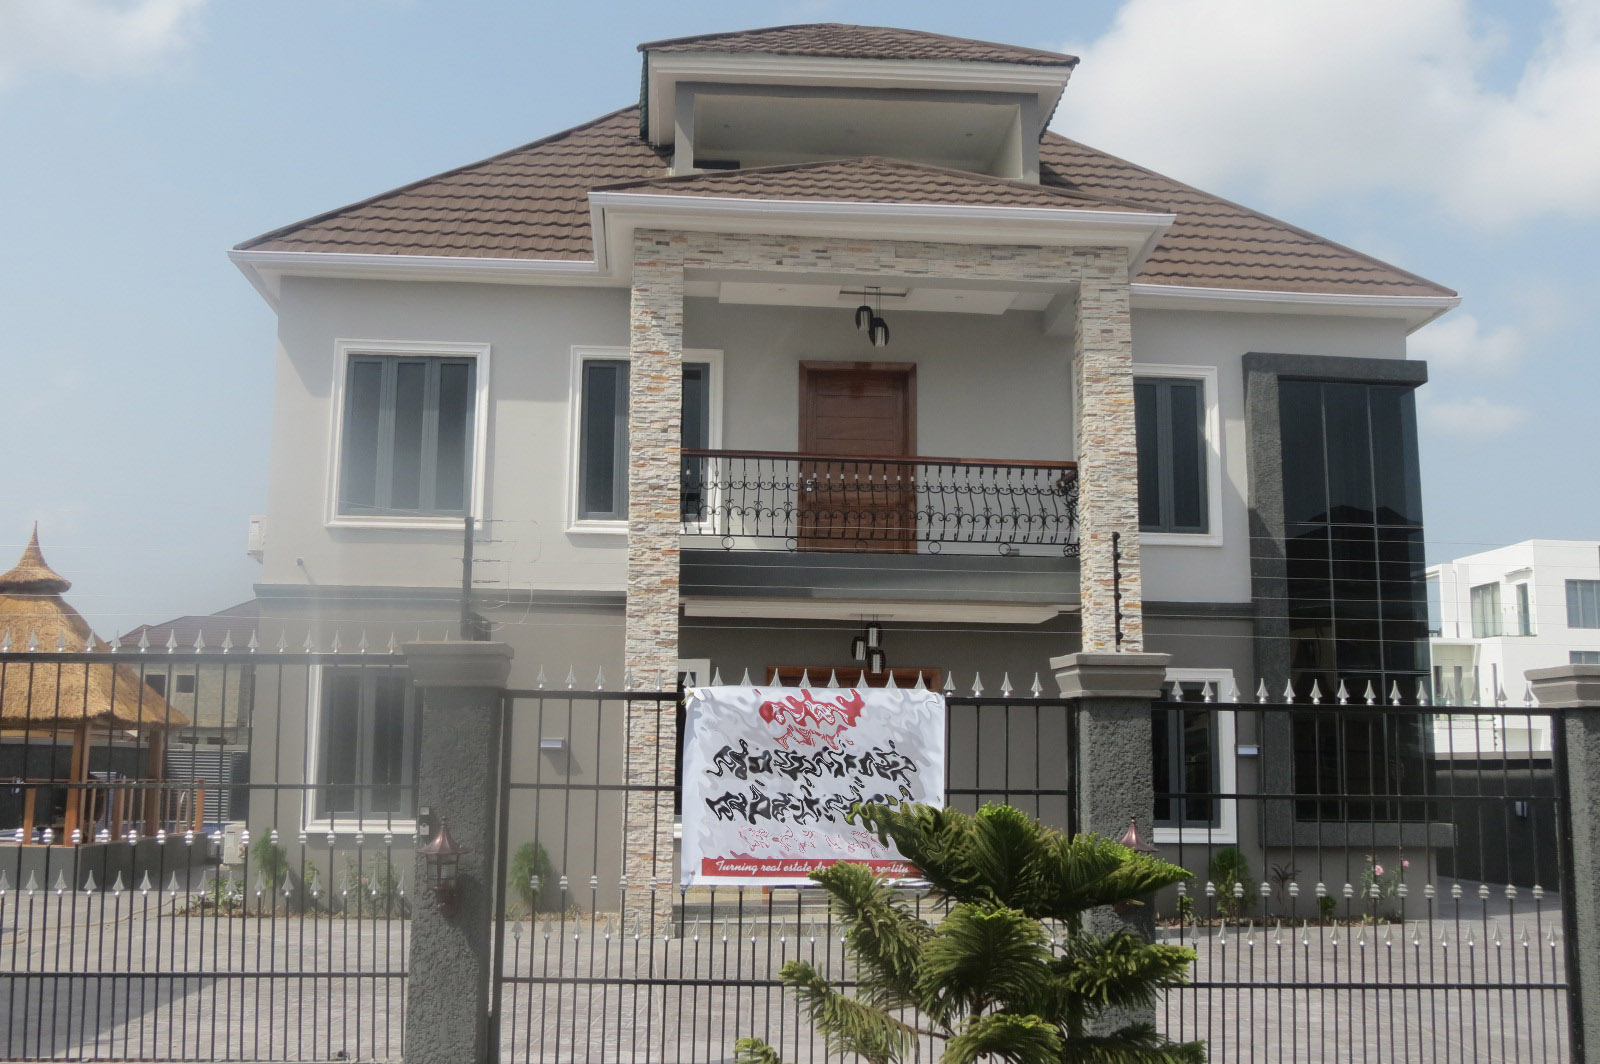 Magnificently Built 5 bedroom Detached House Swimming Pool in Secured Estate by Circle Mall Shoprite